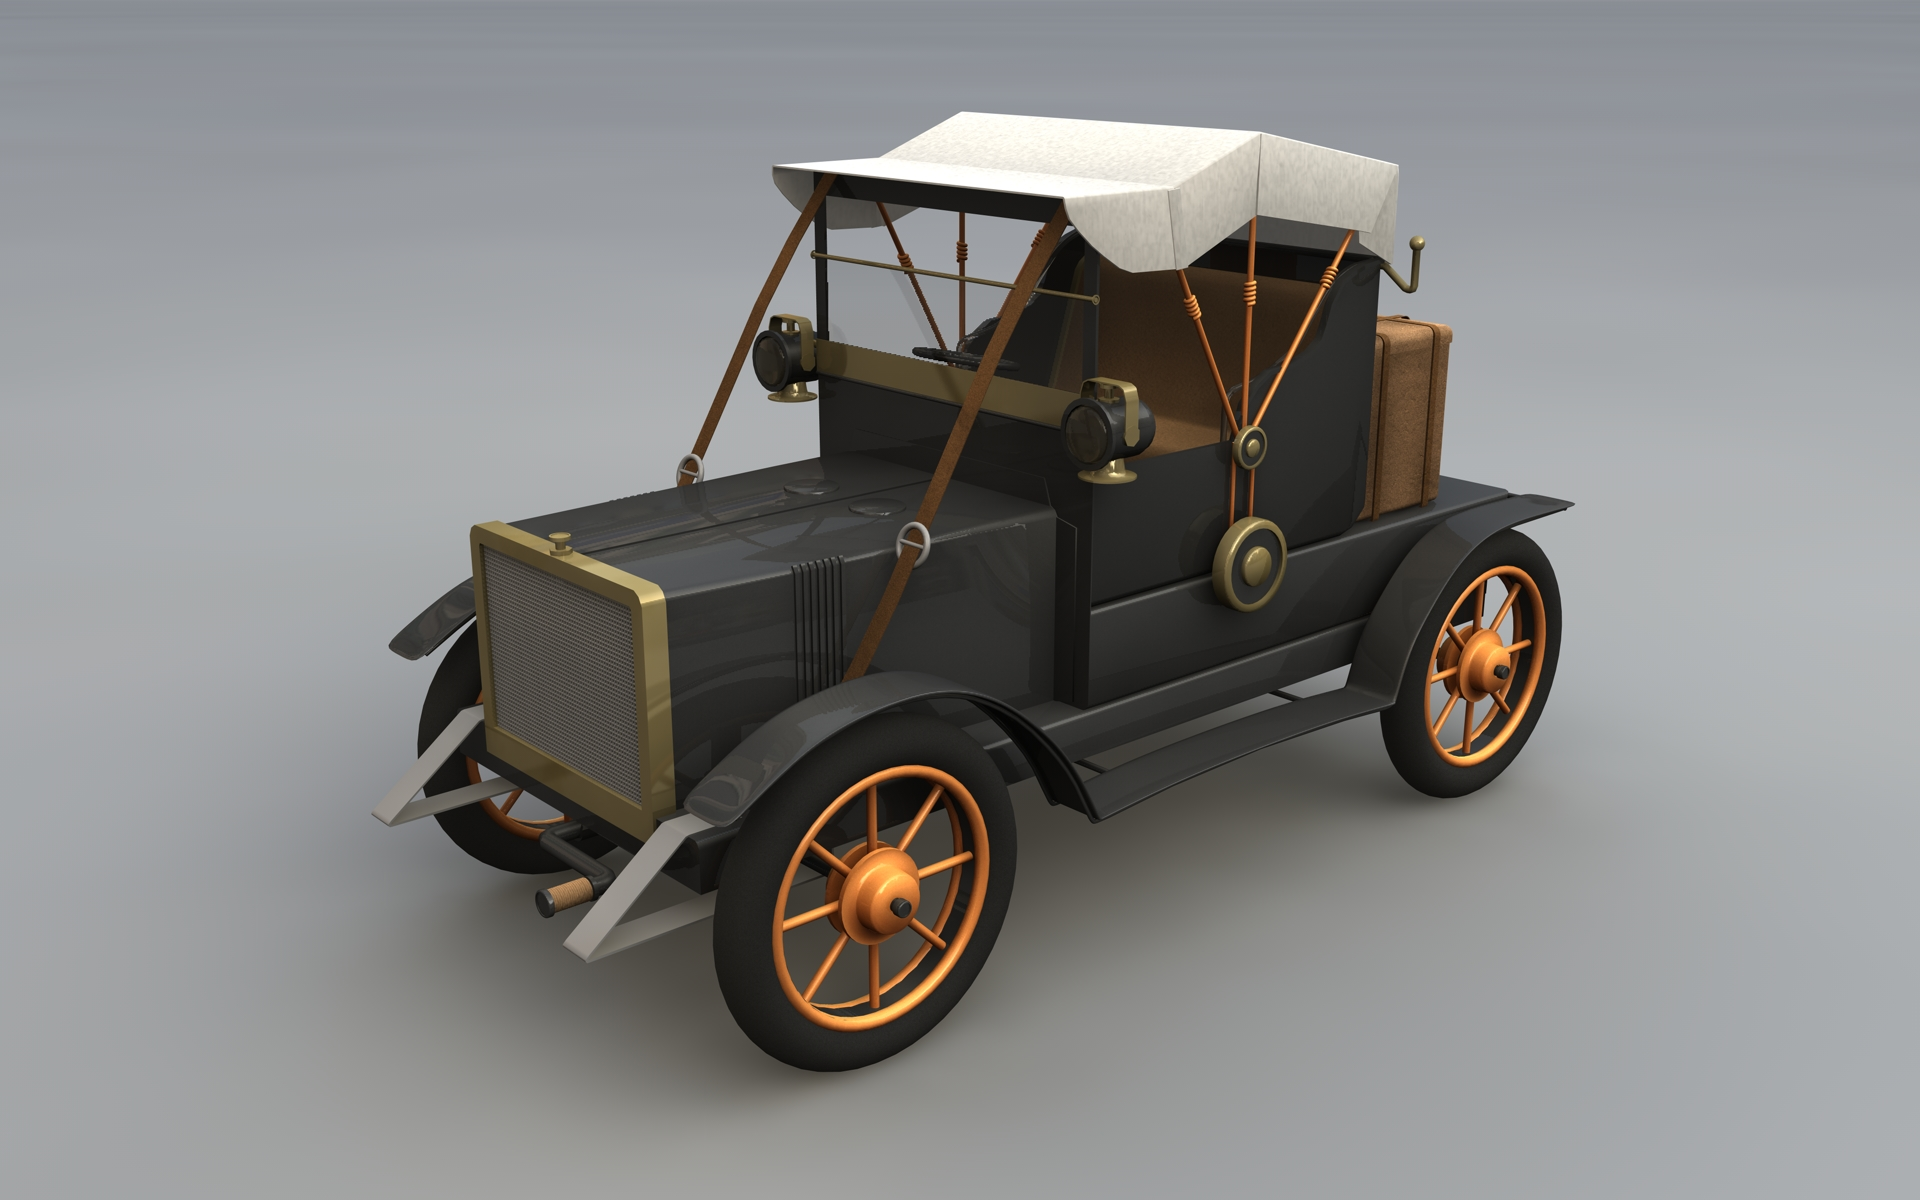 Fancy Old Model Vehicles Collection - Classic Cars Ideas - boiq.info